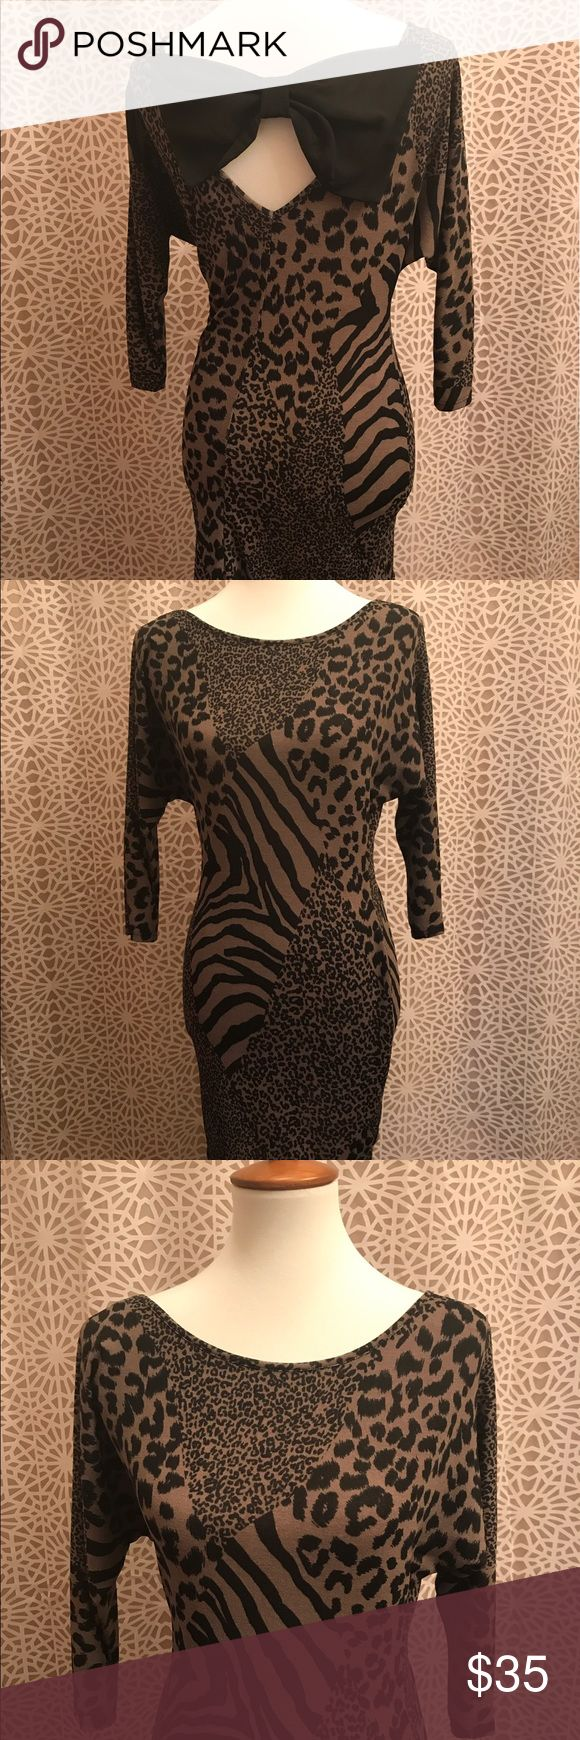 🆕 Sassy Animal Print Bow Back Dress Brand new. Features an adorable bow back design and sassy animal print. 96% polyester and 4% spandex. Made in America. Dresses Long Sleeve